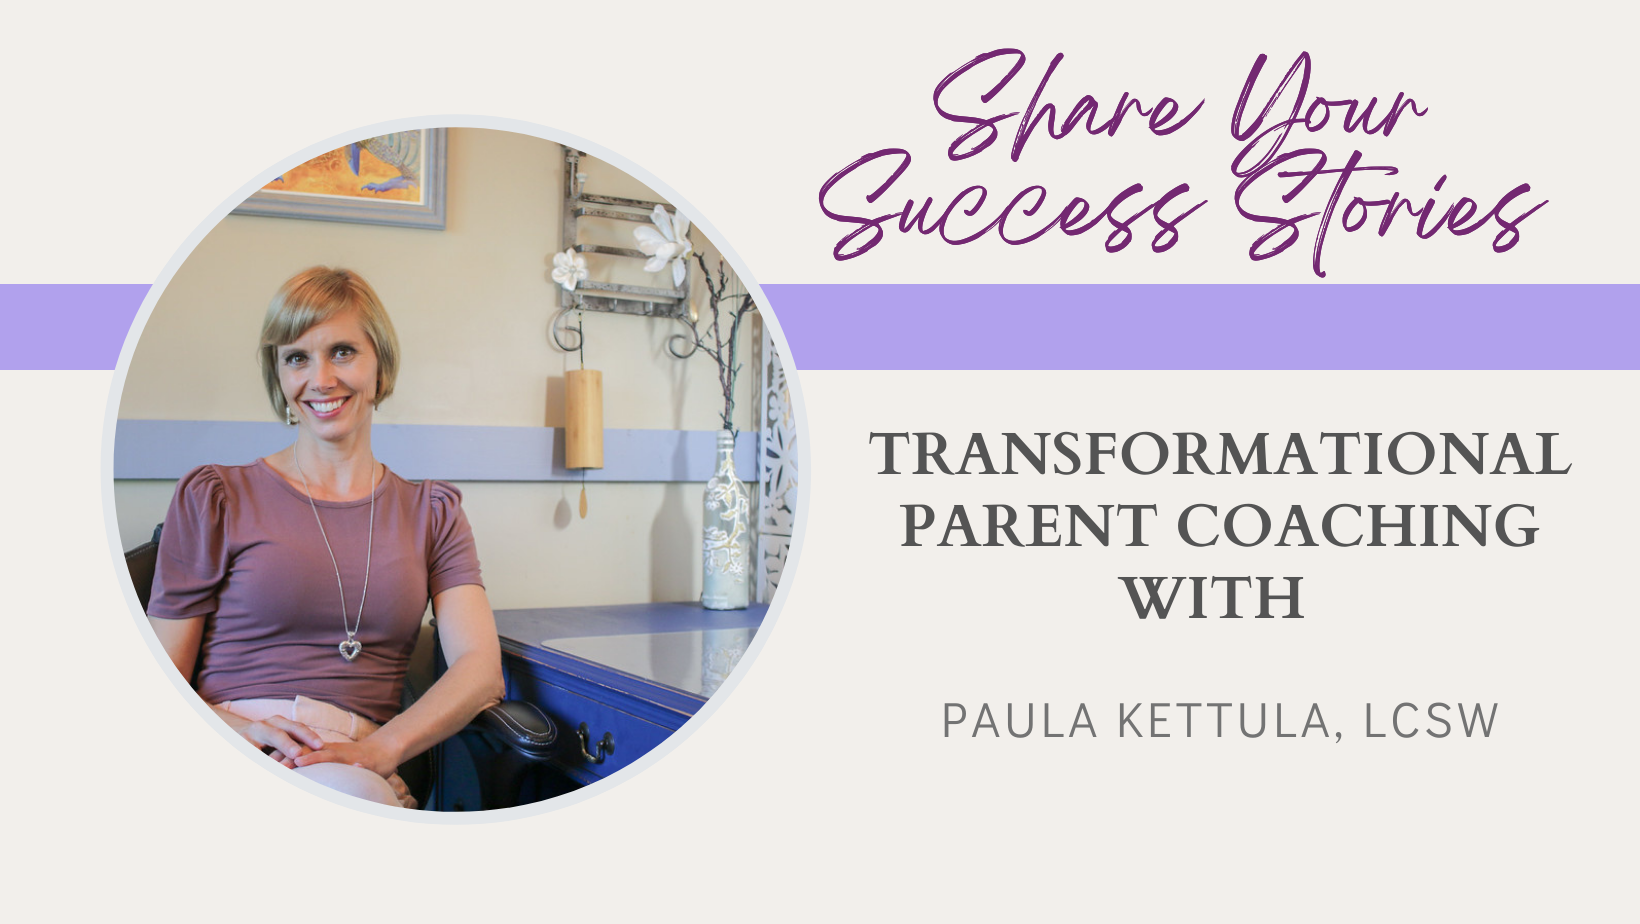 Share Your Success Stories Transformational Parent Coaching with Paula Kettula